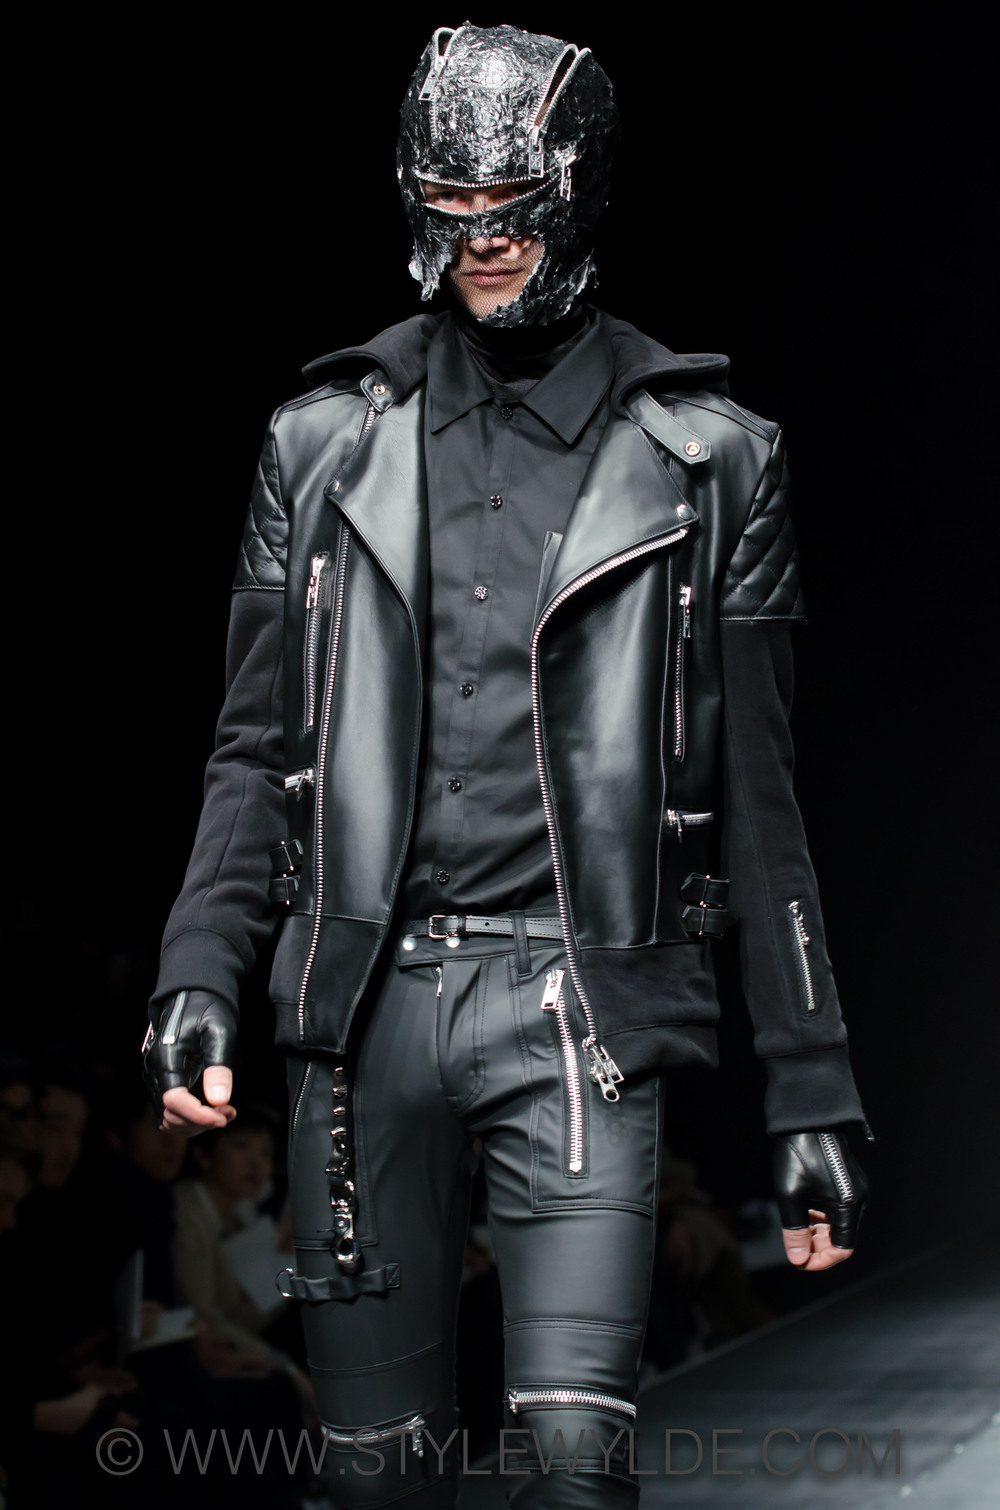 StyleWylde_99percentIS_AW14_edited (1 of 1)-8.jpg